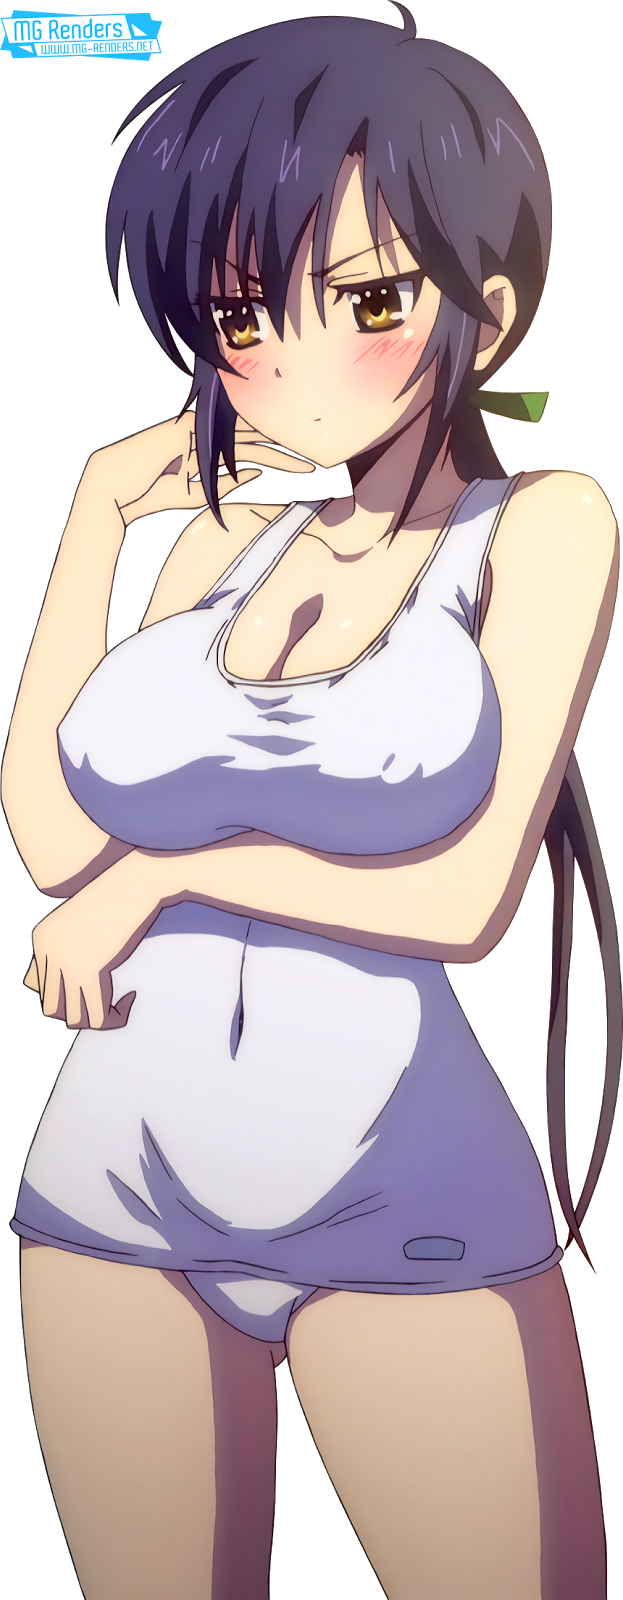 Tags: Anime, Render,  Breasts press,  Misumi Rin,  Okusama ga Seitokaichou!,  Sukumizu,  PNG, Image, Picture